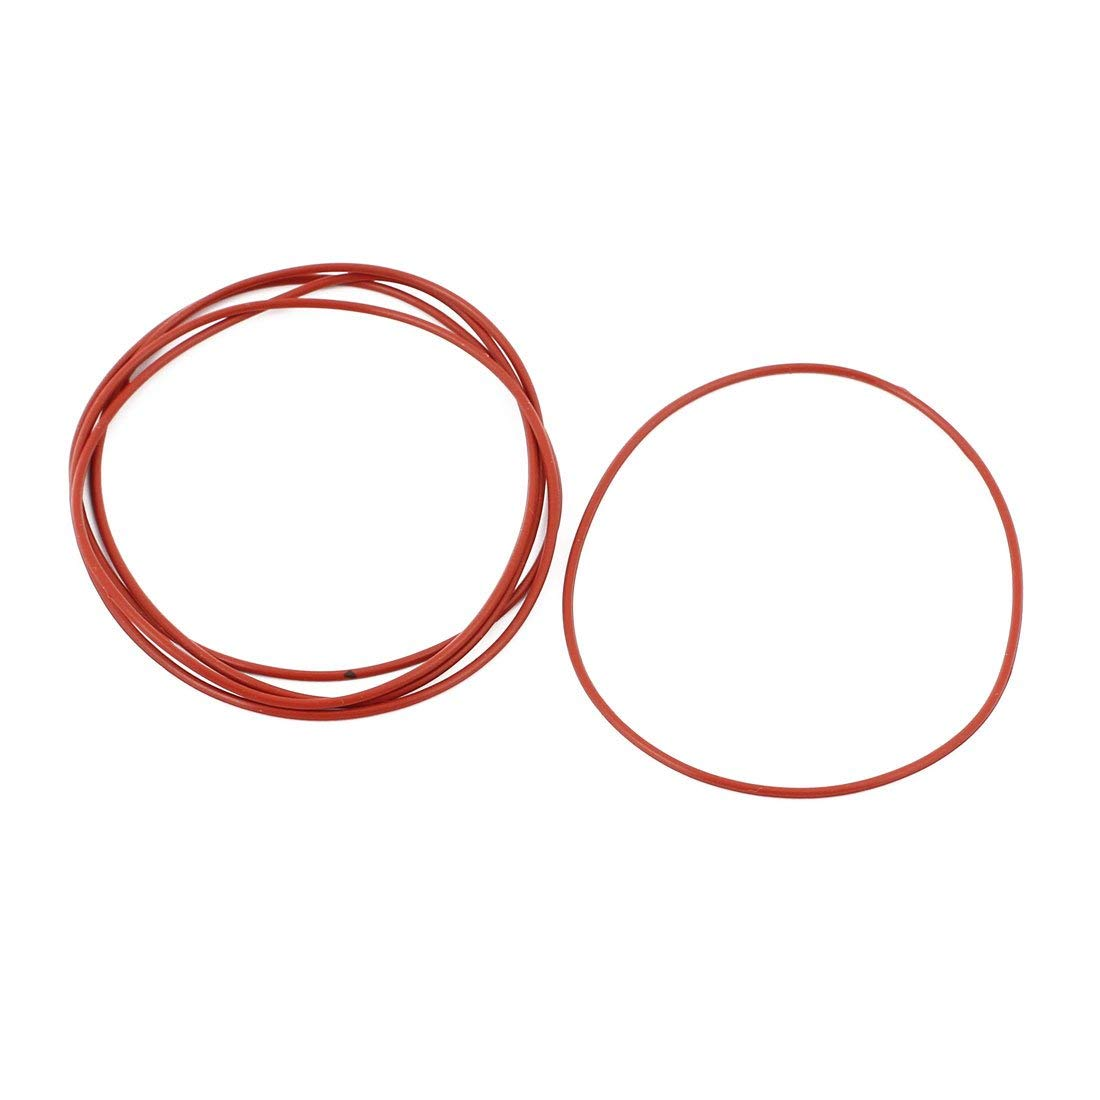 5Pcs Red 70mm x 1.5mm Silicone Rubber Gasket O-Ring Heat-Resistant Sealing Ring